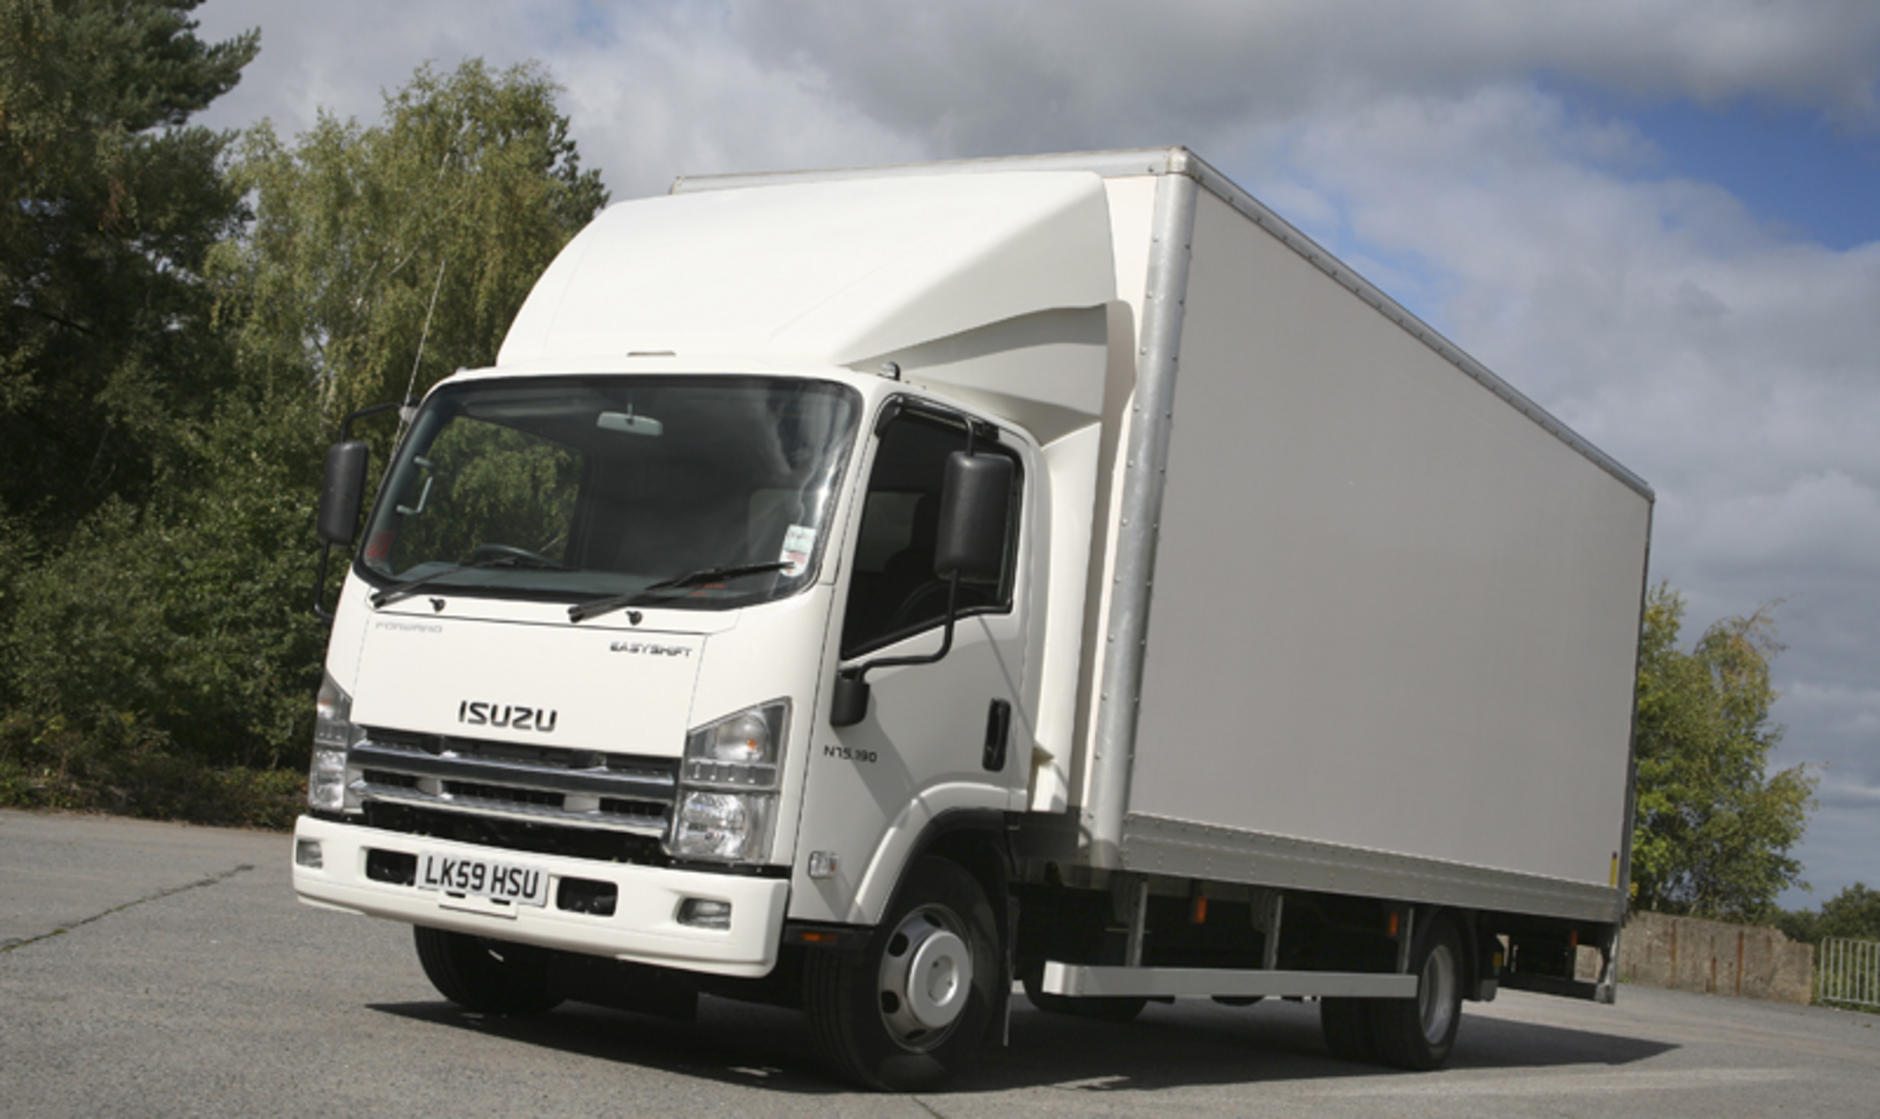 Mercedes Van For Sale >> Driving 7.5-tonne trucks: what are the requirements? | Commercial Motor